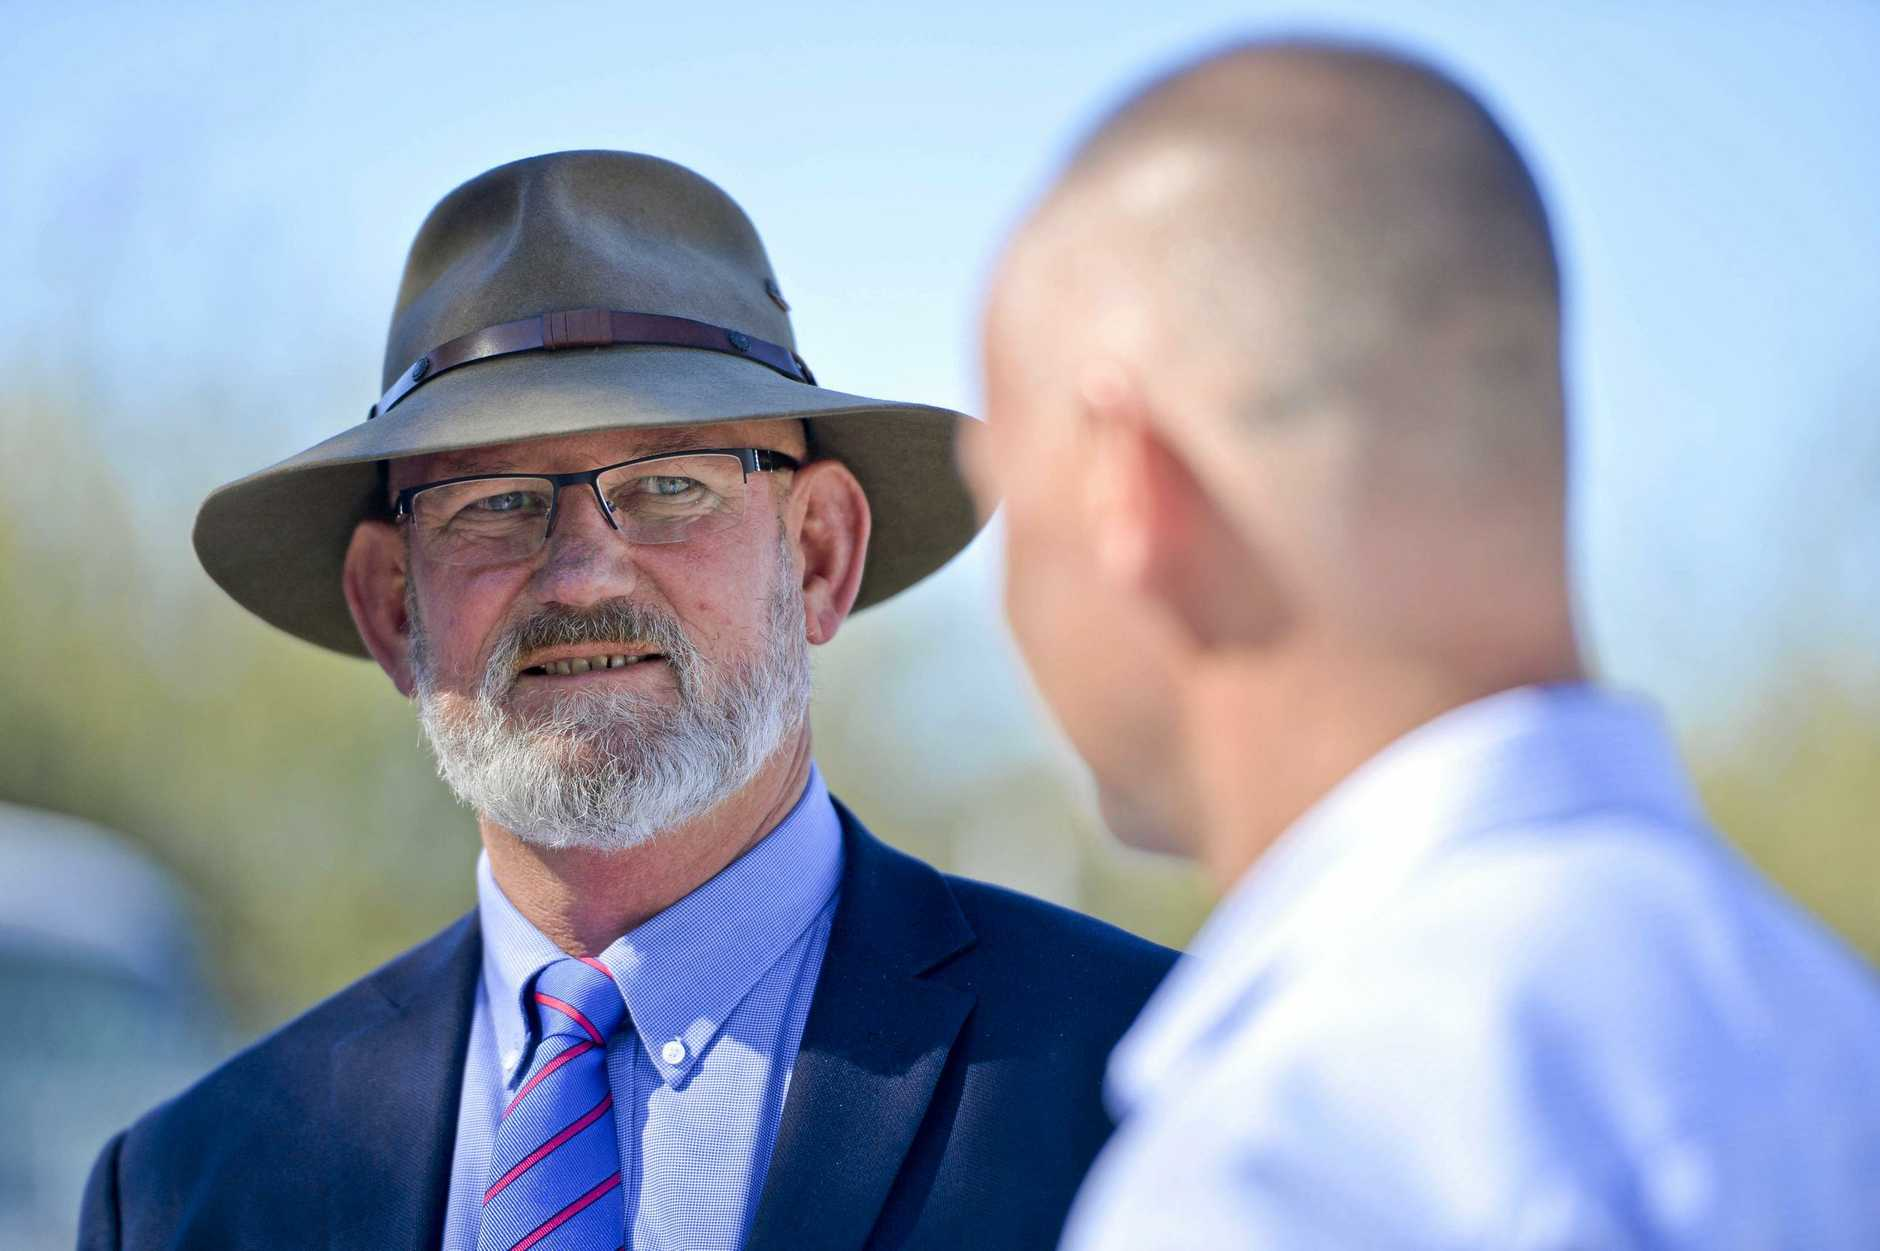 Rockhampton MP Bill Byrne has resigned from cabinet and will not contest the Rockhampton State seat at the next election.